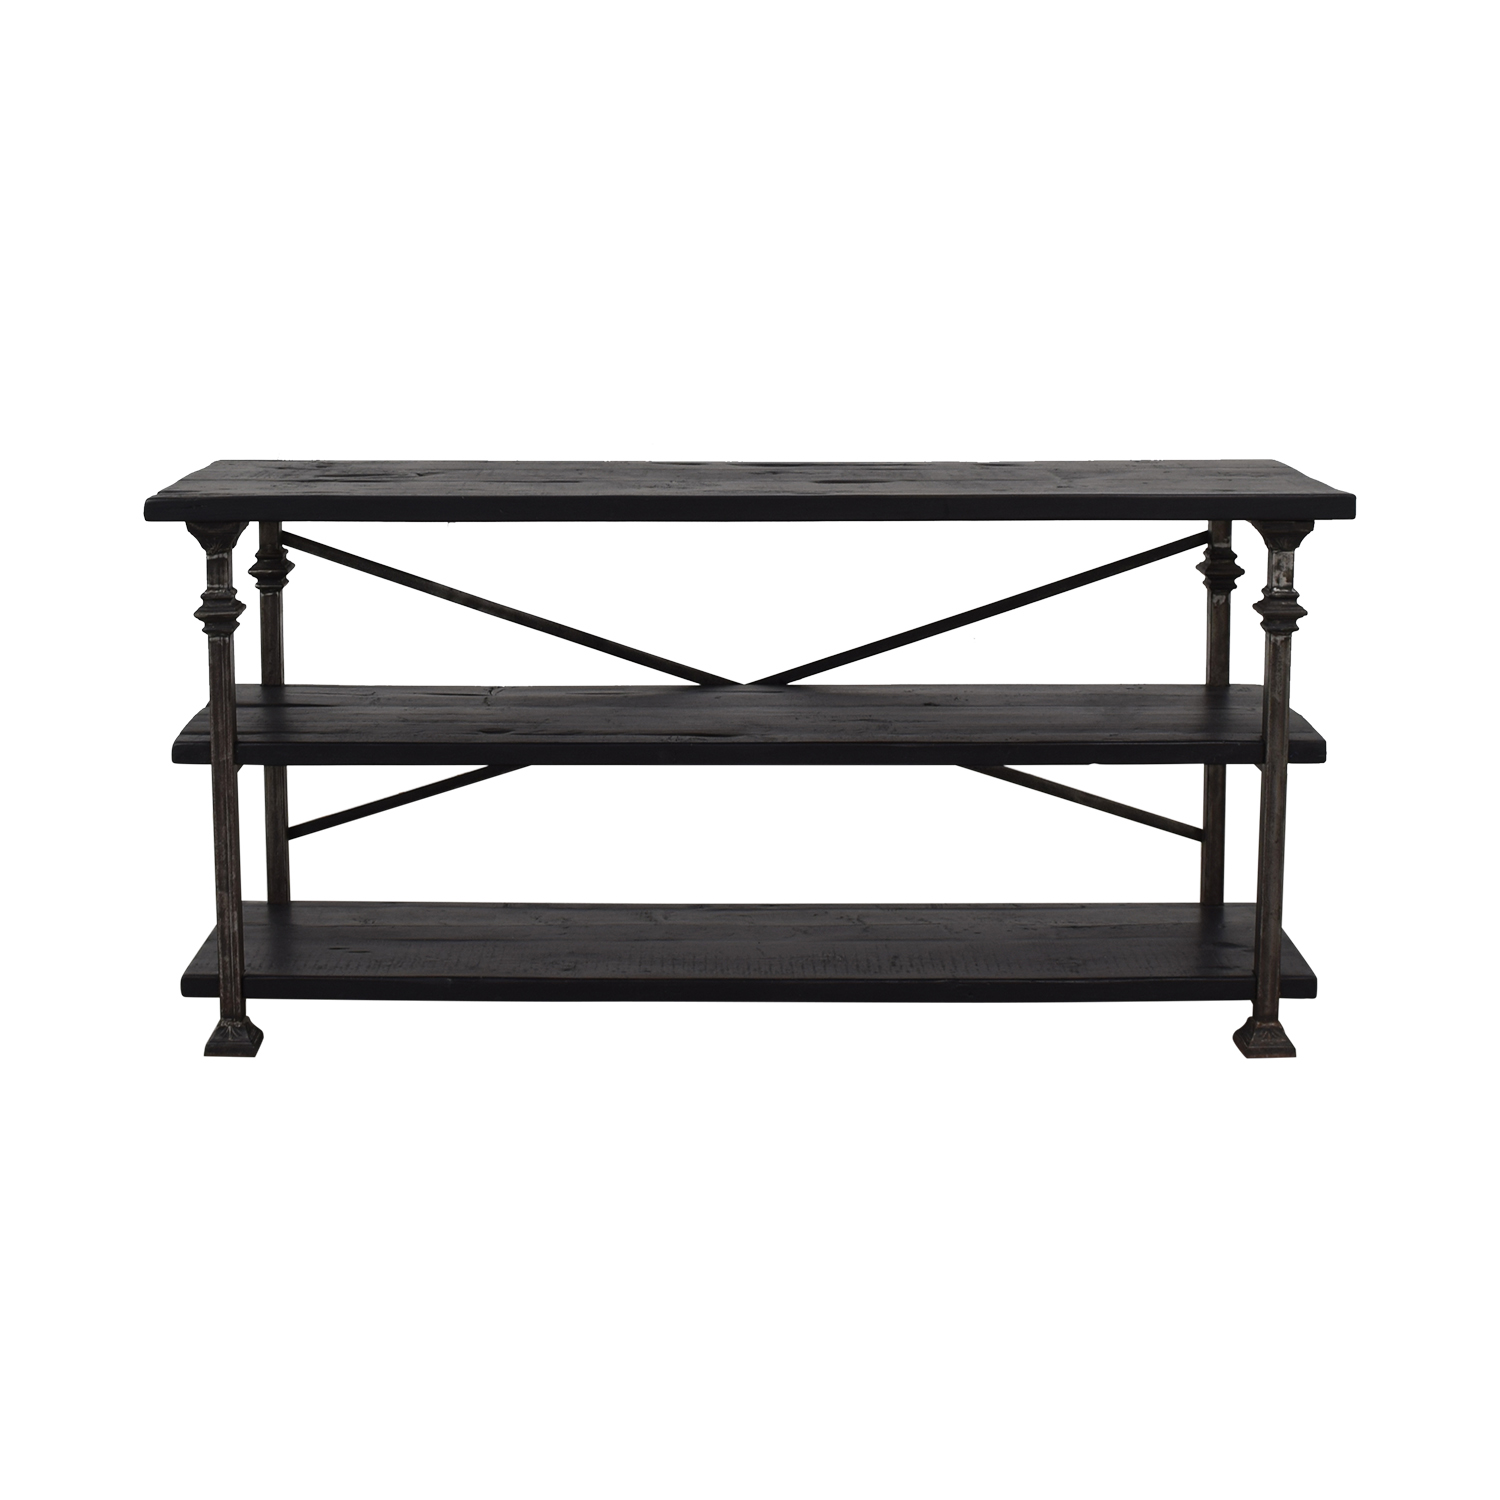 Restoration Hardware Restoration Hardware Salvage Baker's Console on sale